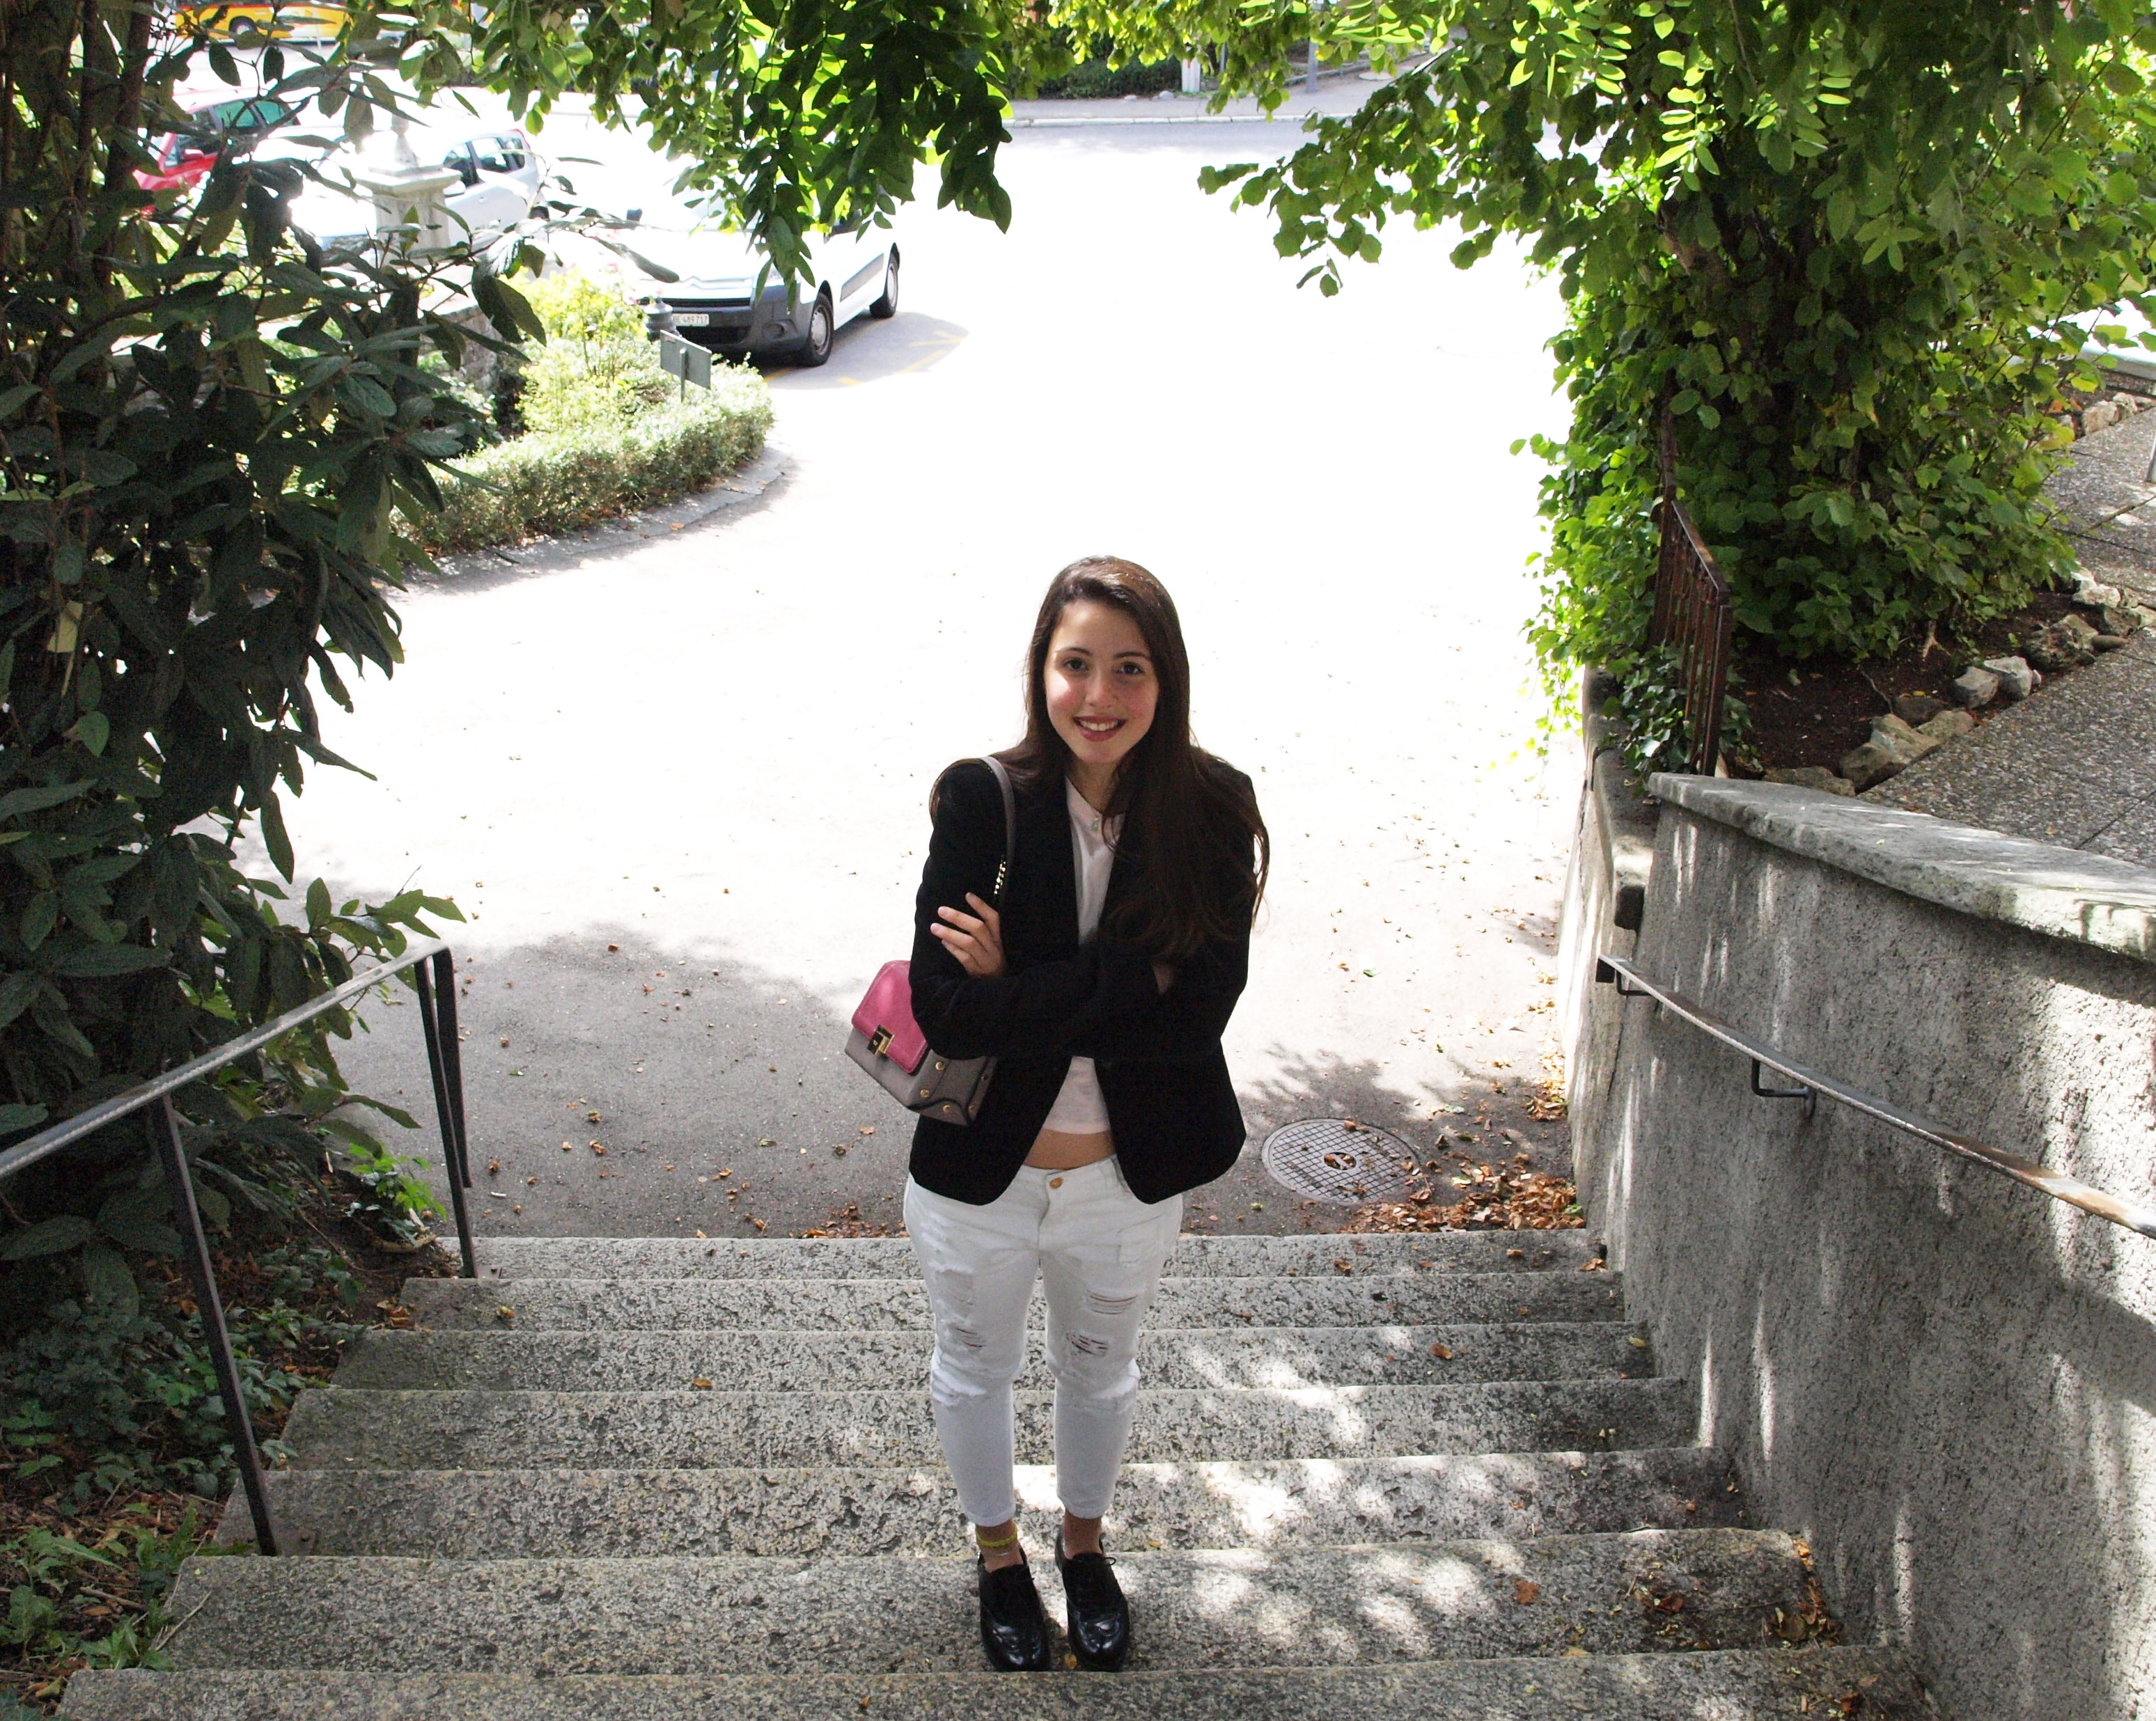 Catarina Morais · Page 120 of 168 · Fashion, beauty and lifestyle blog made with love in Portugal - Blog de moda, beleza